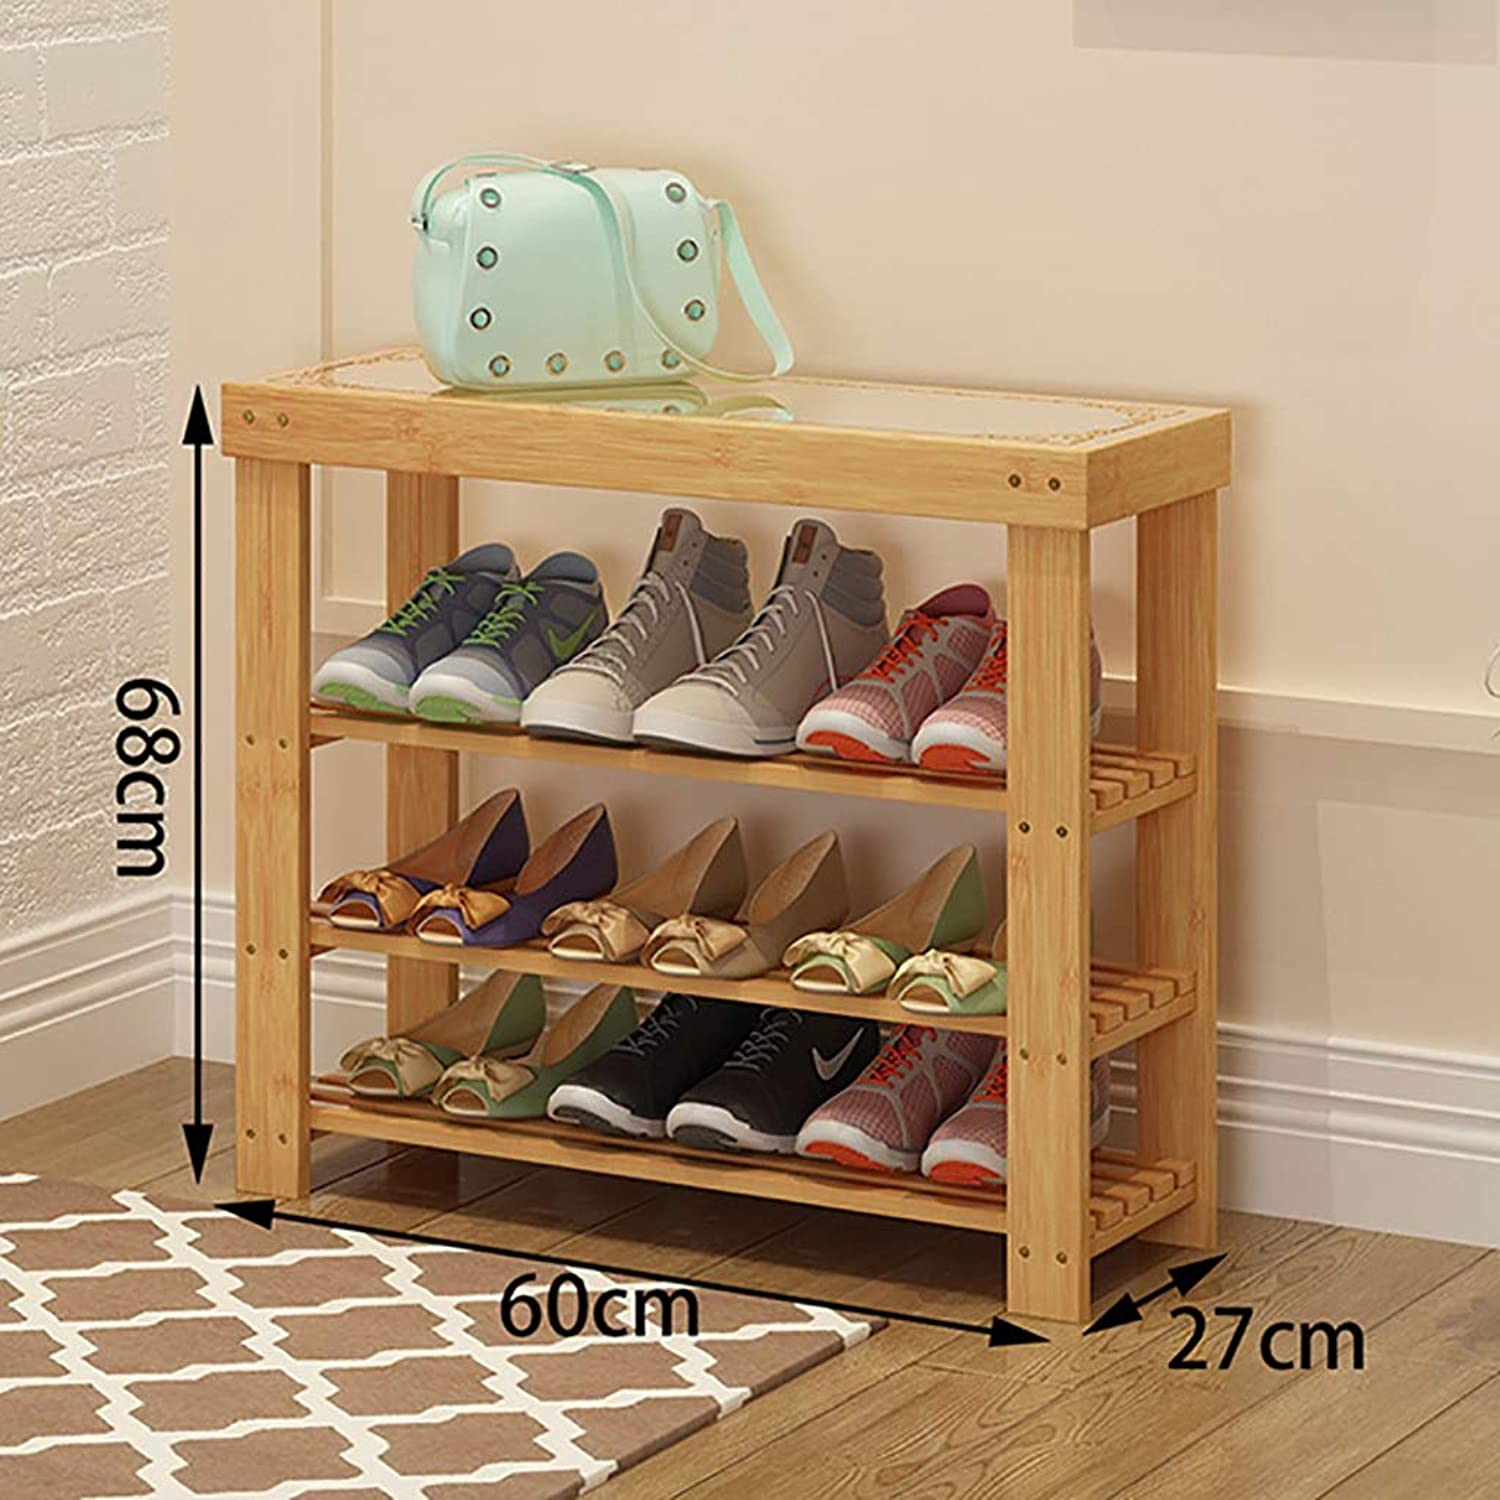 Modern Minimalist Home Change shoes Stool shoes Cabinet Clothing Store Sofa Stool into The Door Bamboo Long Bench Storage Stool Rest Stool. (Size   60  27  68cm)